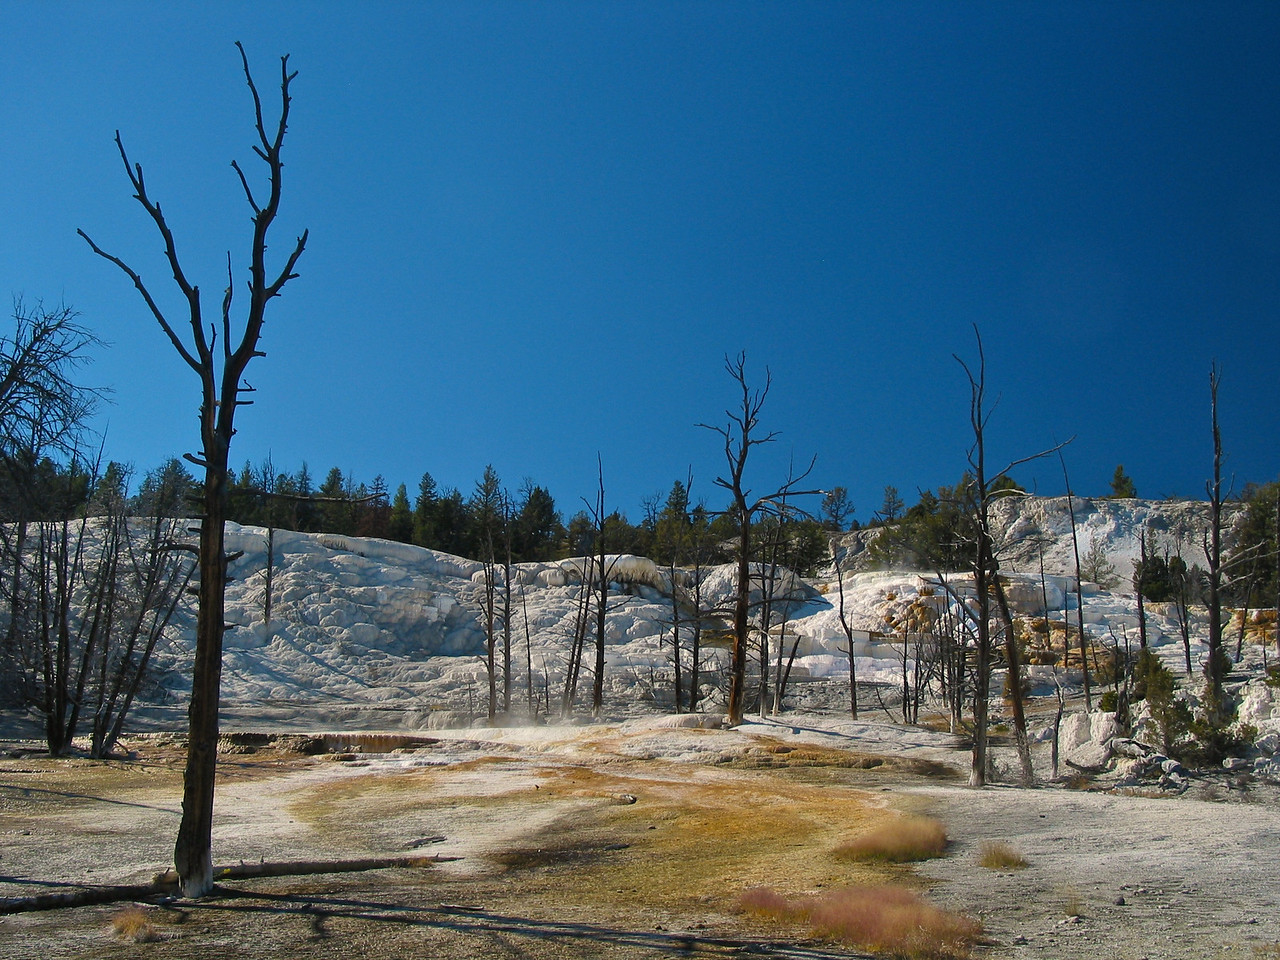 Mammoth Hot Springs is a large complex of hot springs on a hill of travertine in Yellowstone National Park adjacent to Fort Yellowstone and the Mammoth Hot Springs Historic District.[